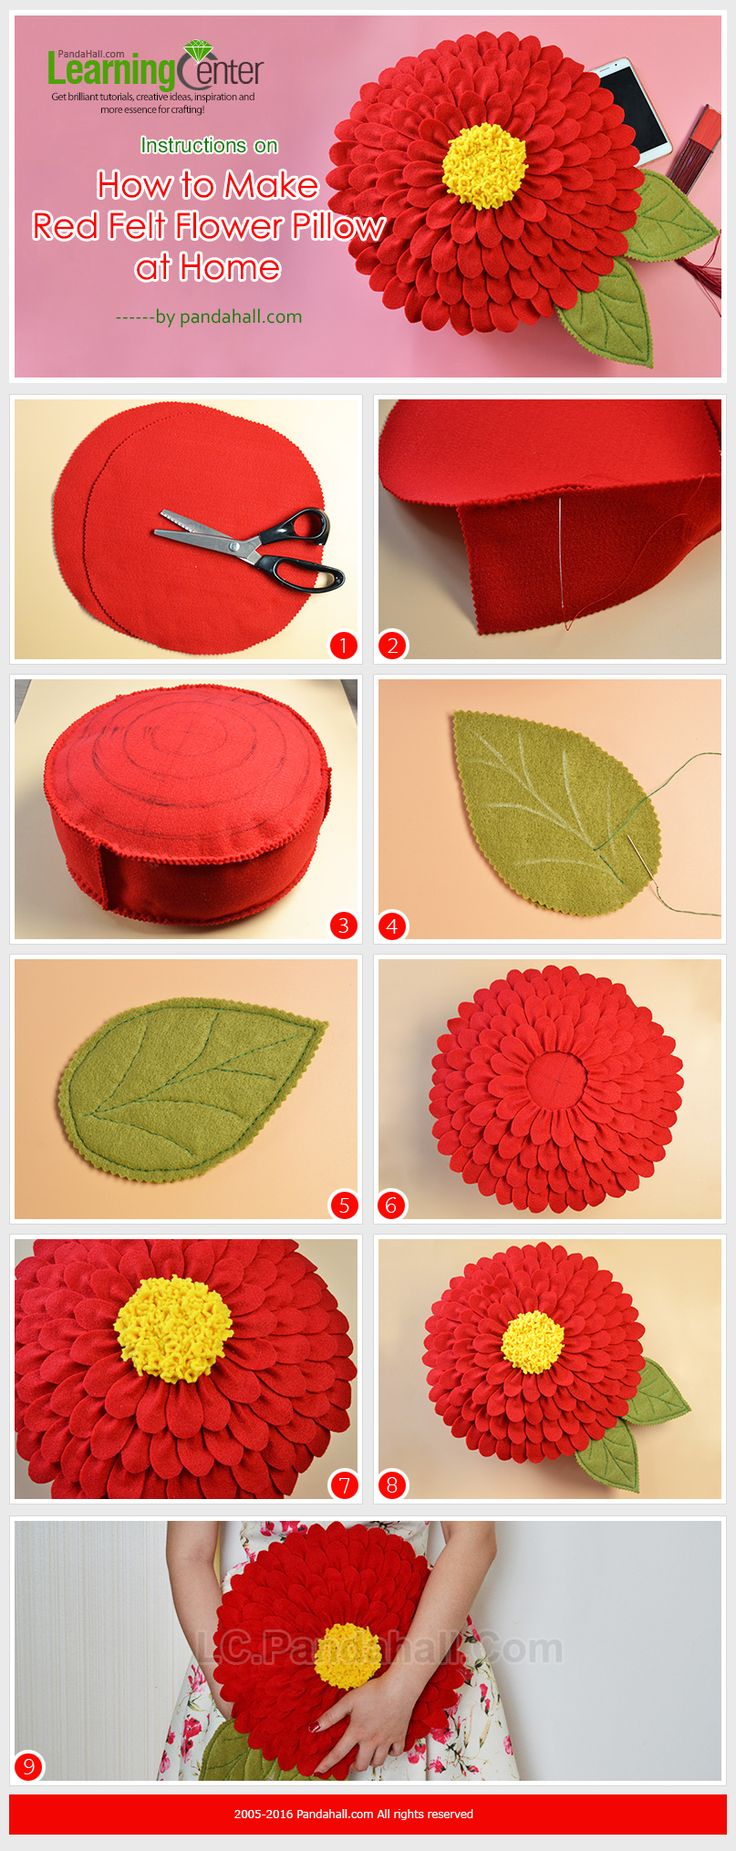 Instructions on How to Make Red Felt Flower Pillow at Home from LC.Pandahall.com